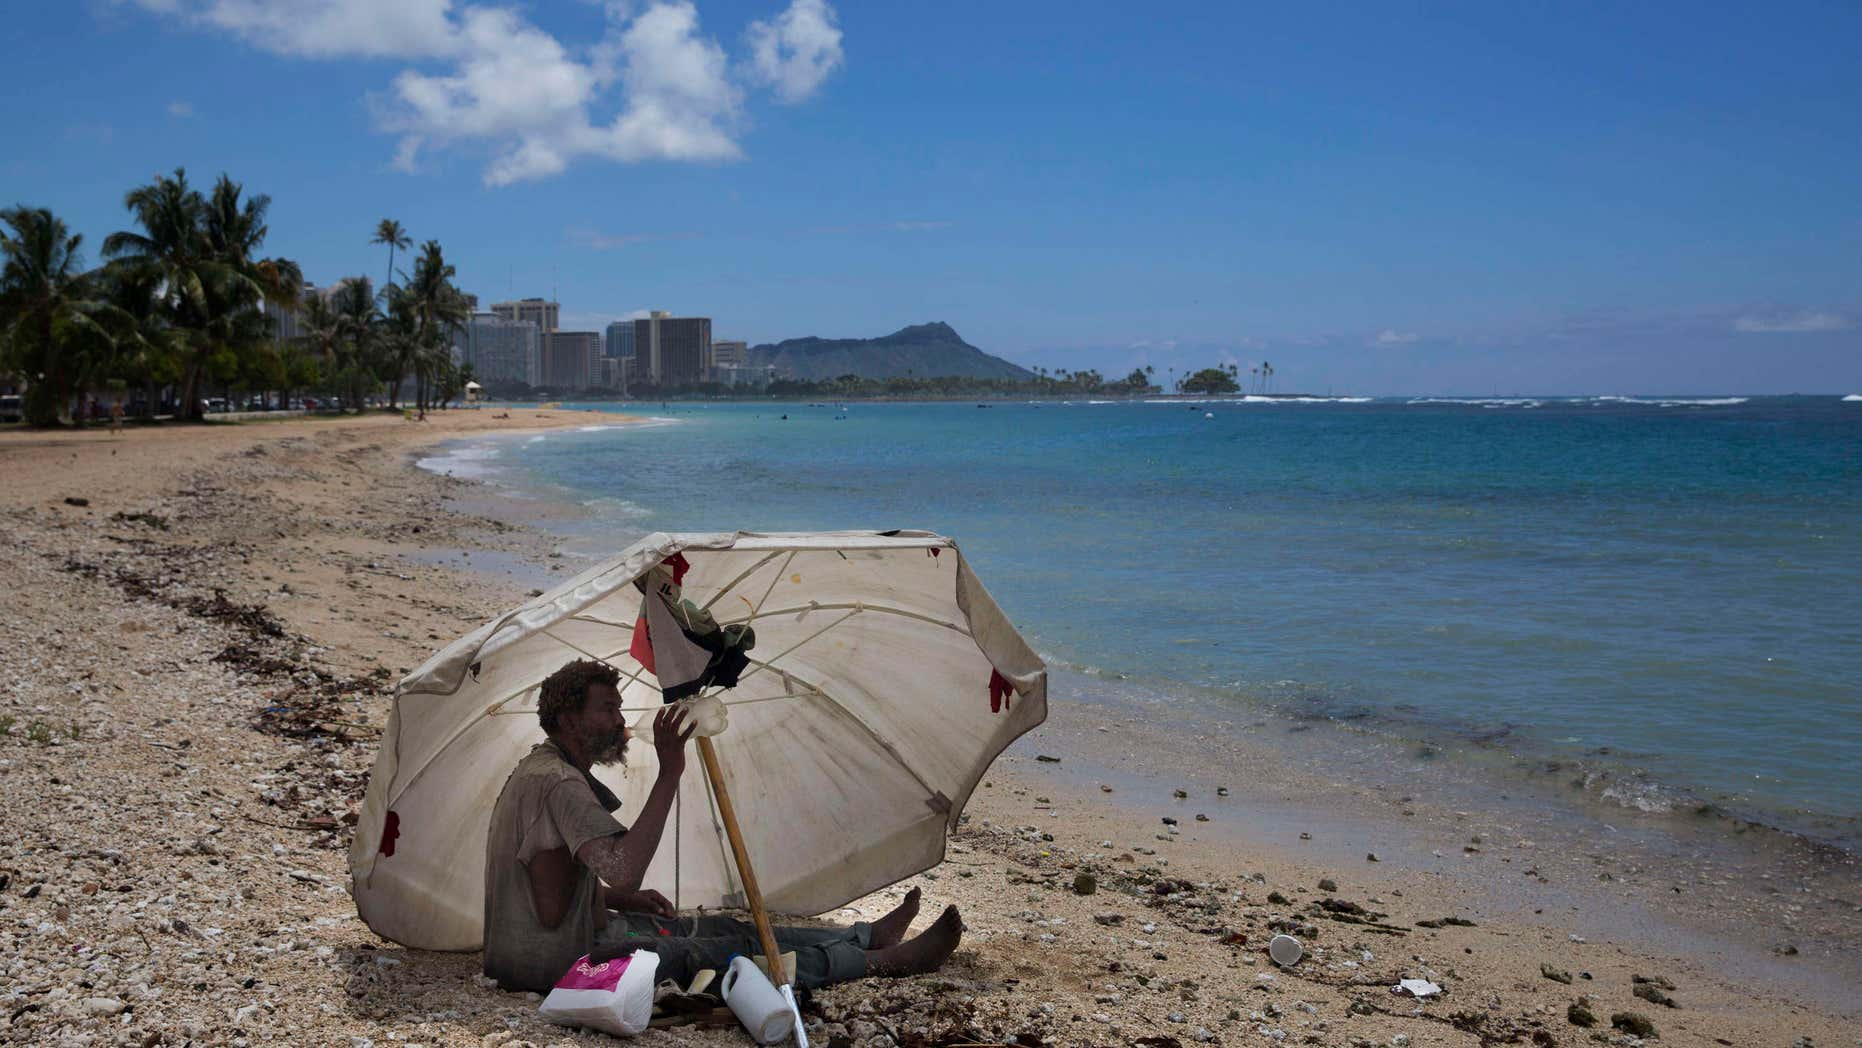 FILE - In this Aug. 27, 2015, file photo, a homeless man drinks water while sitting on the beach at Ala Moana Beach Park located near Waikiki in Honolulu.